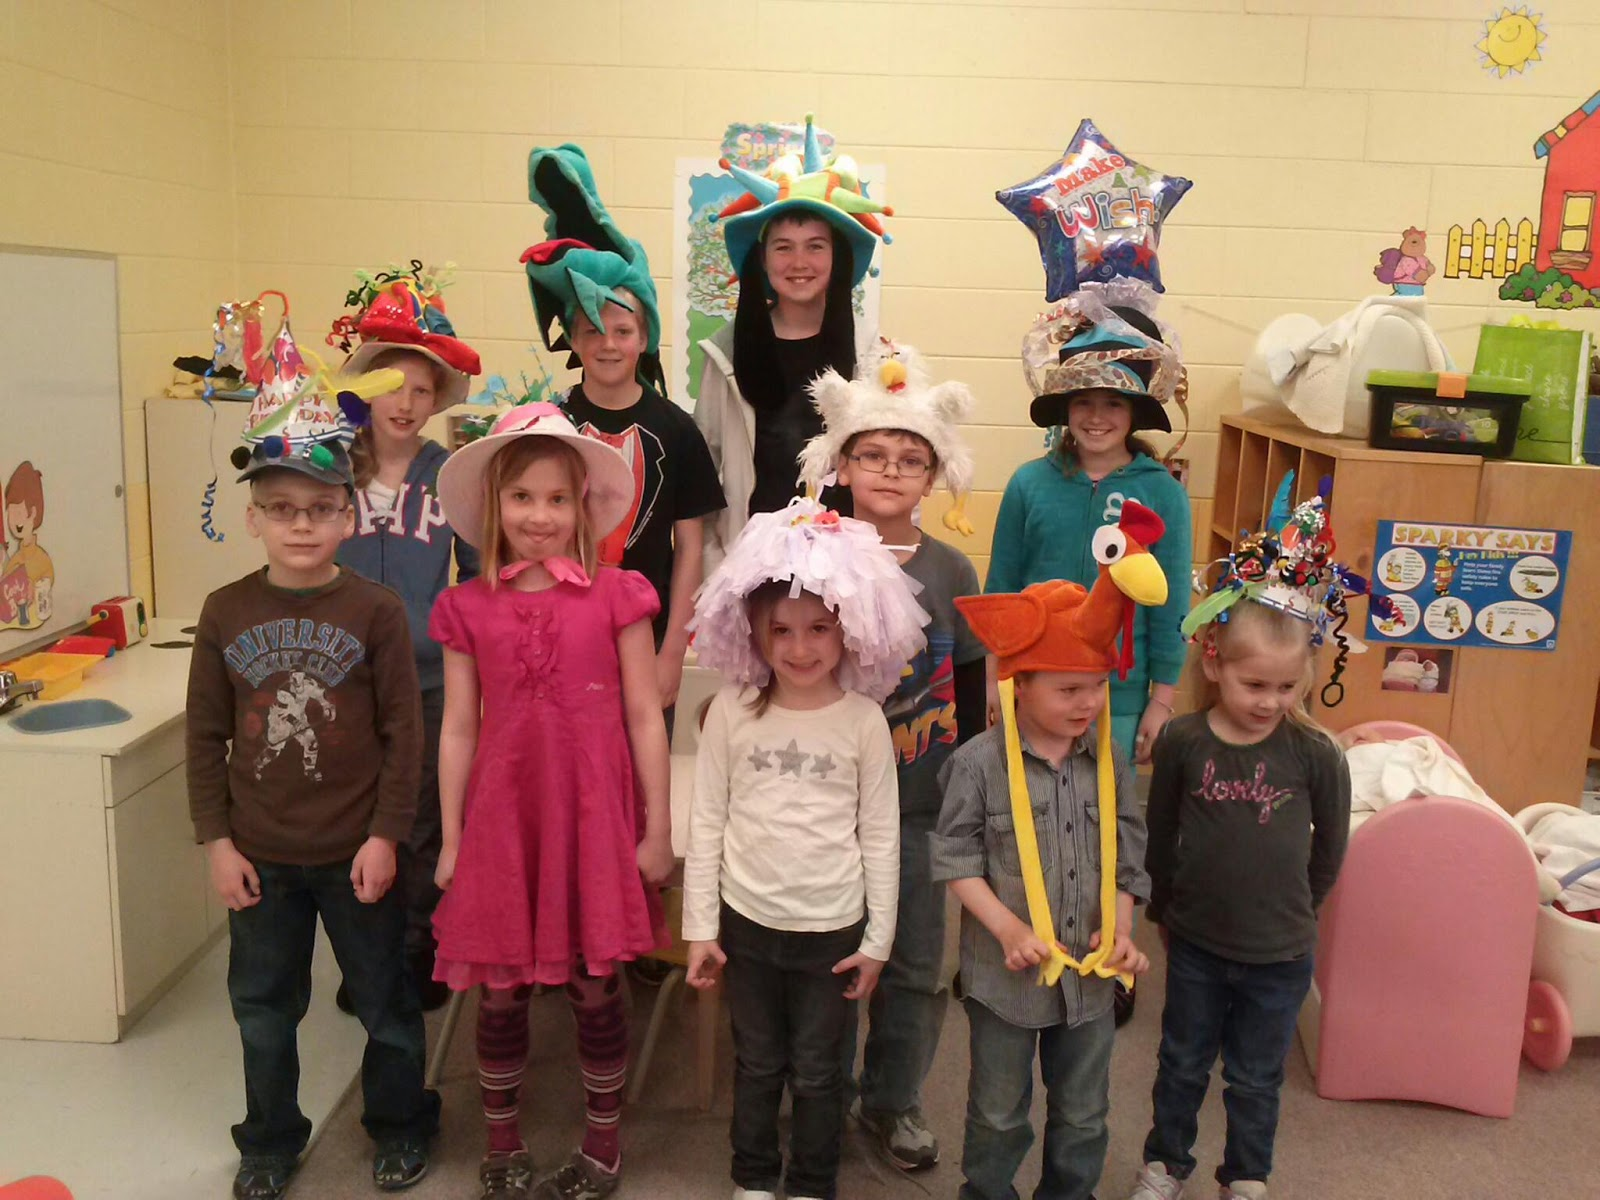 Crazy Hat Ideas For Crazy Hat Day Our jk crazy hat champs.